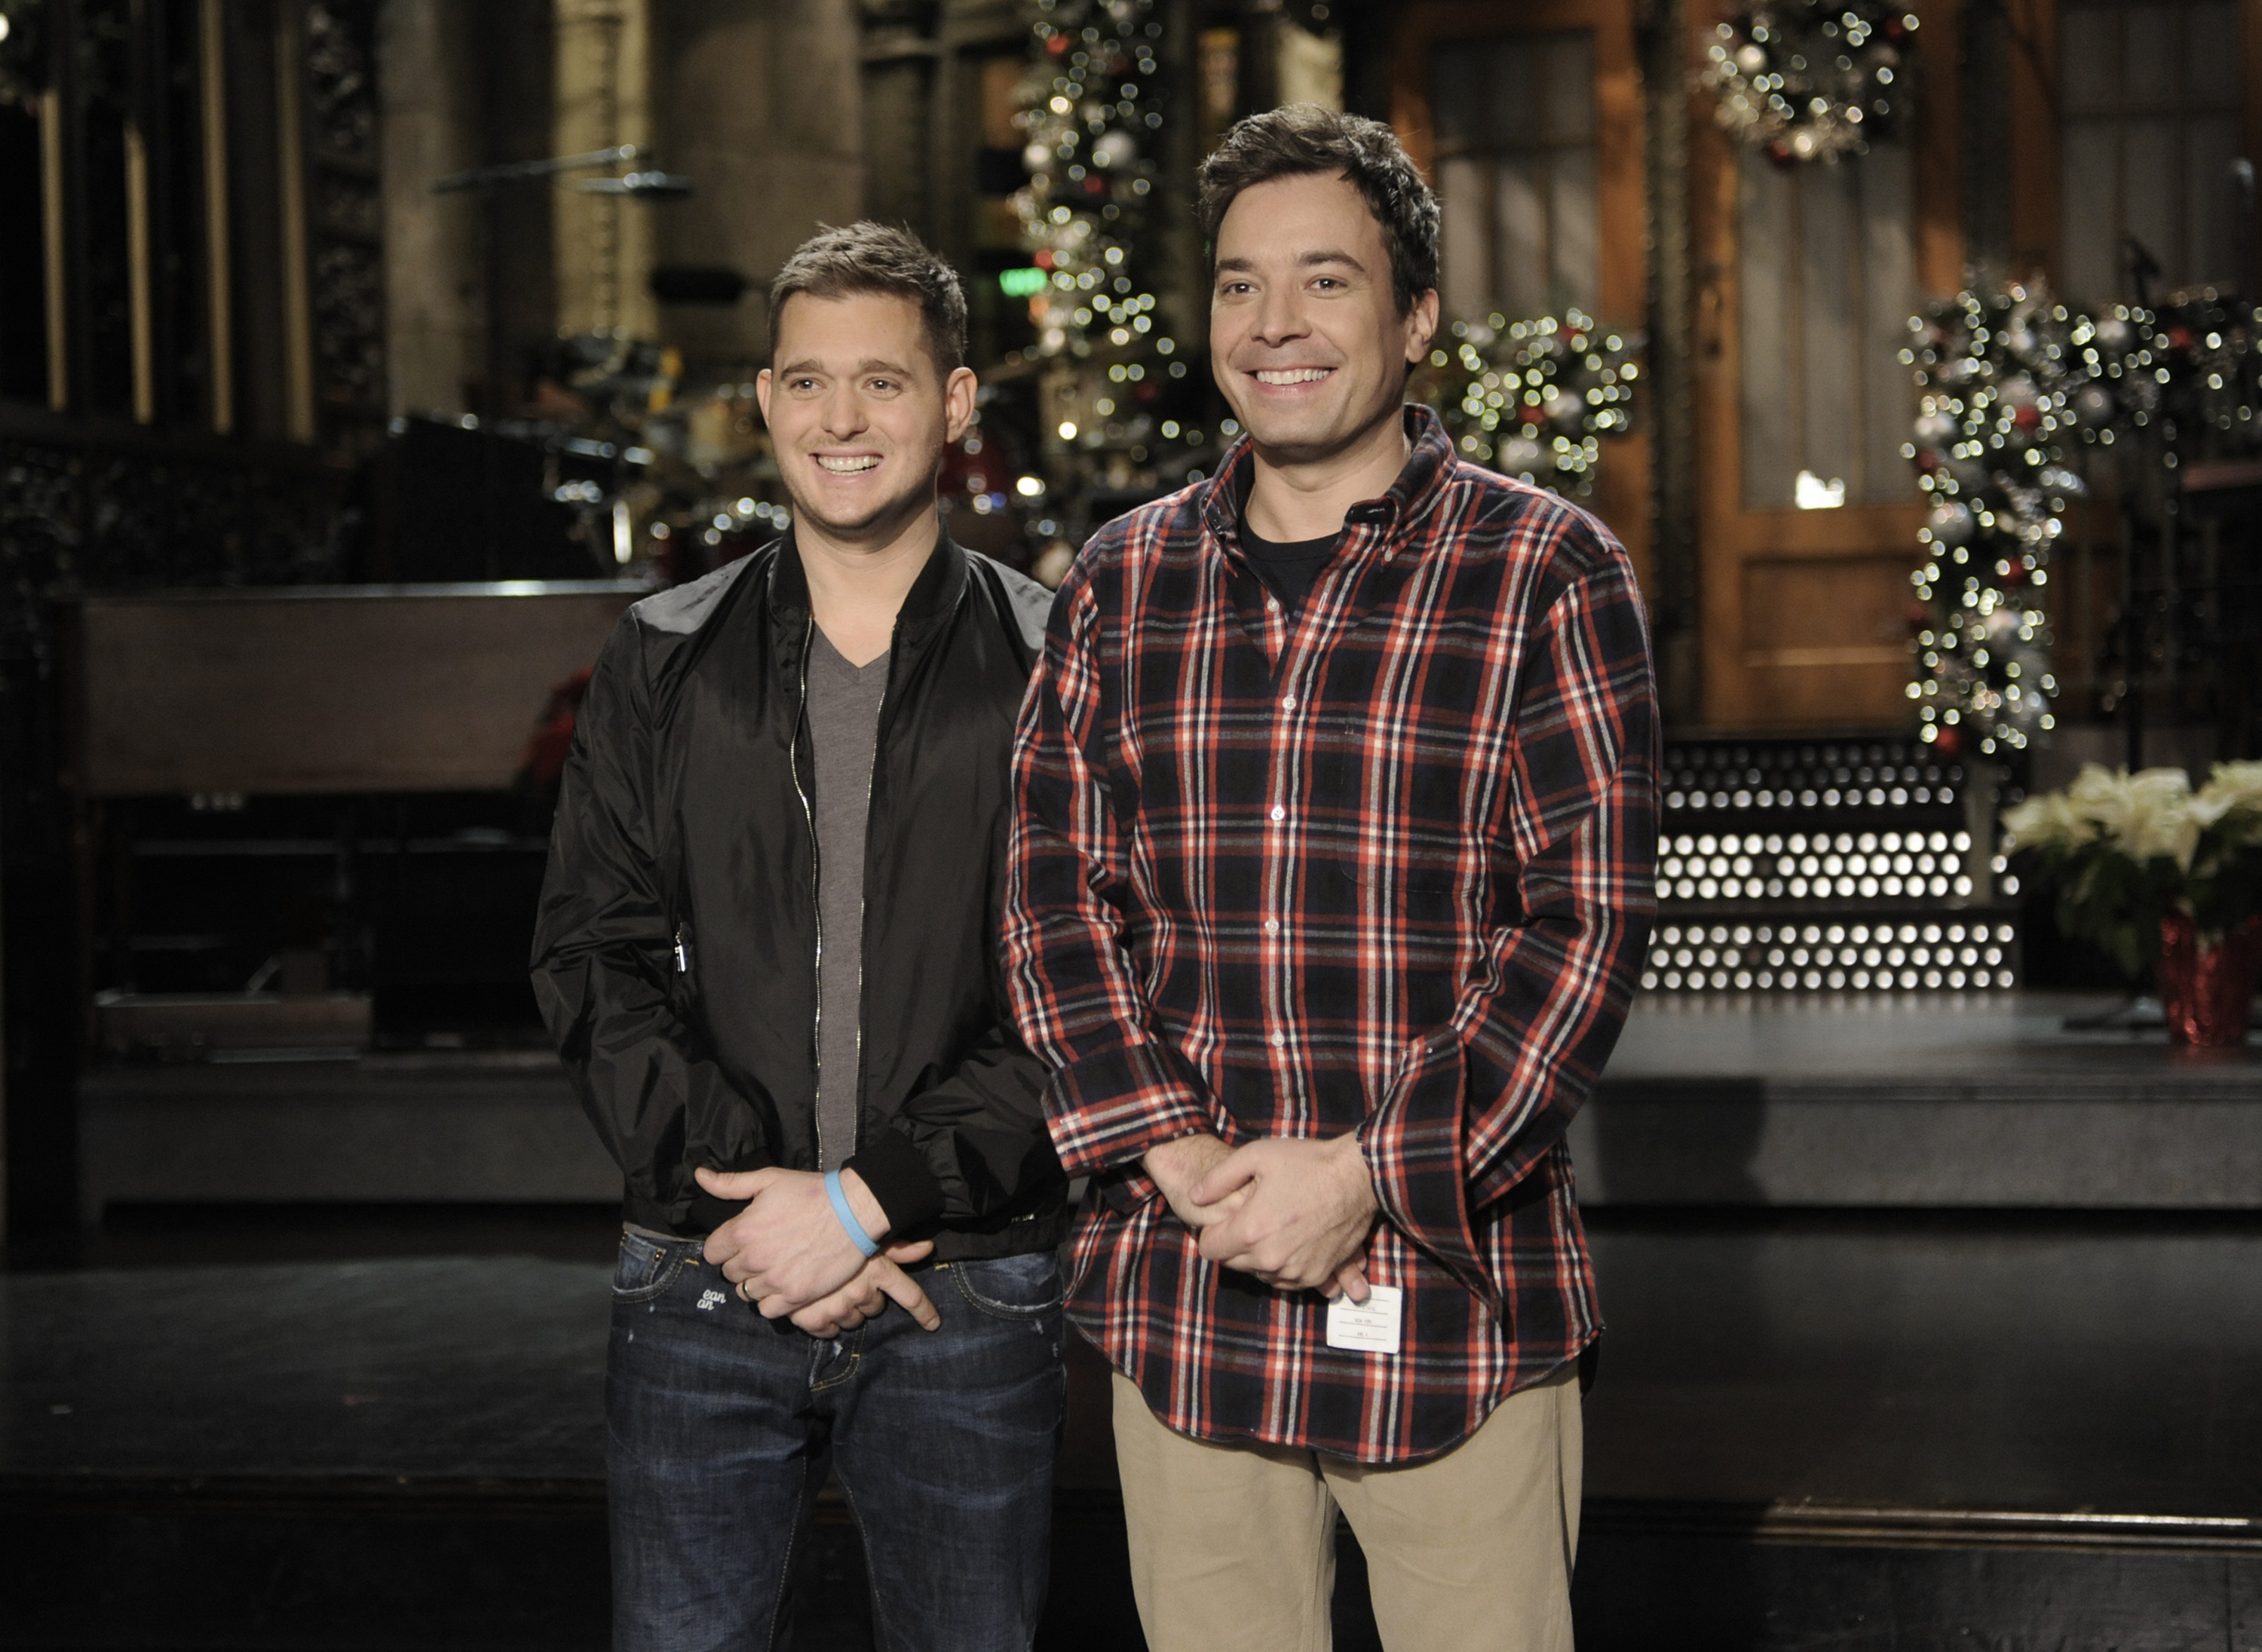 merry christmas from snl the blade - Saturday Night Live Christmas Song